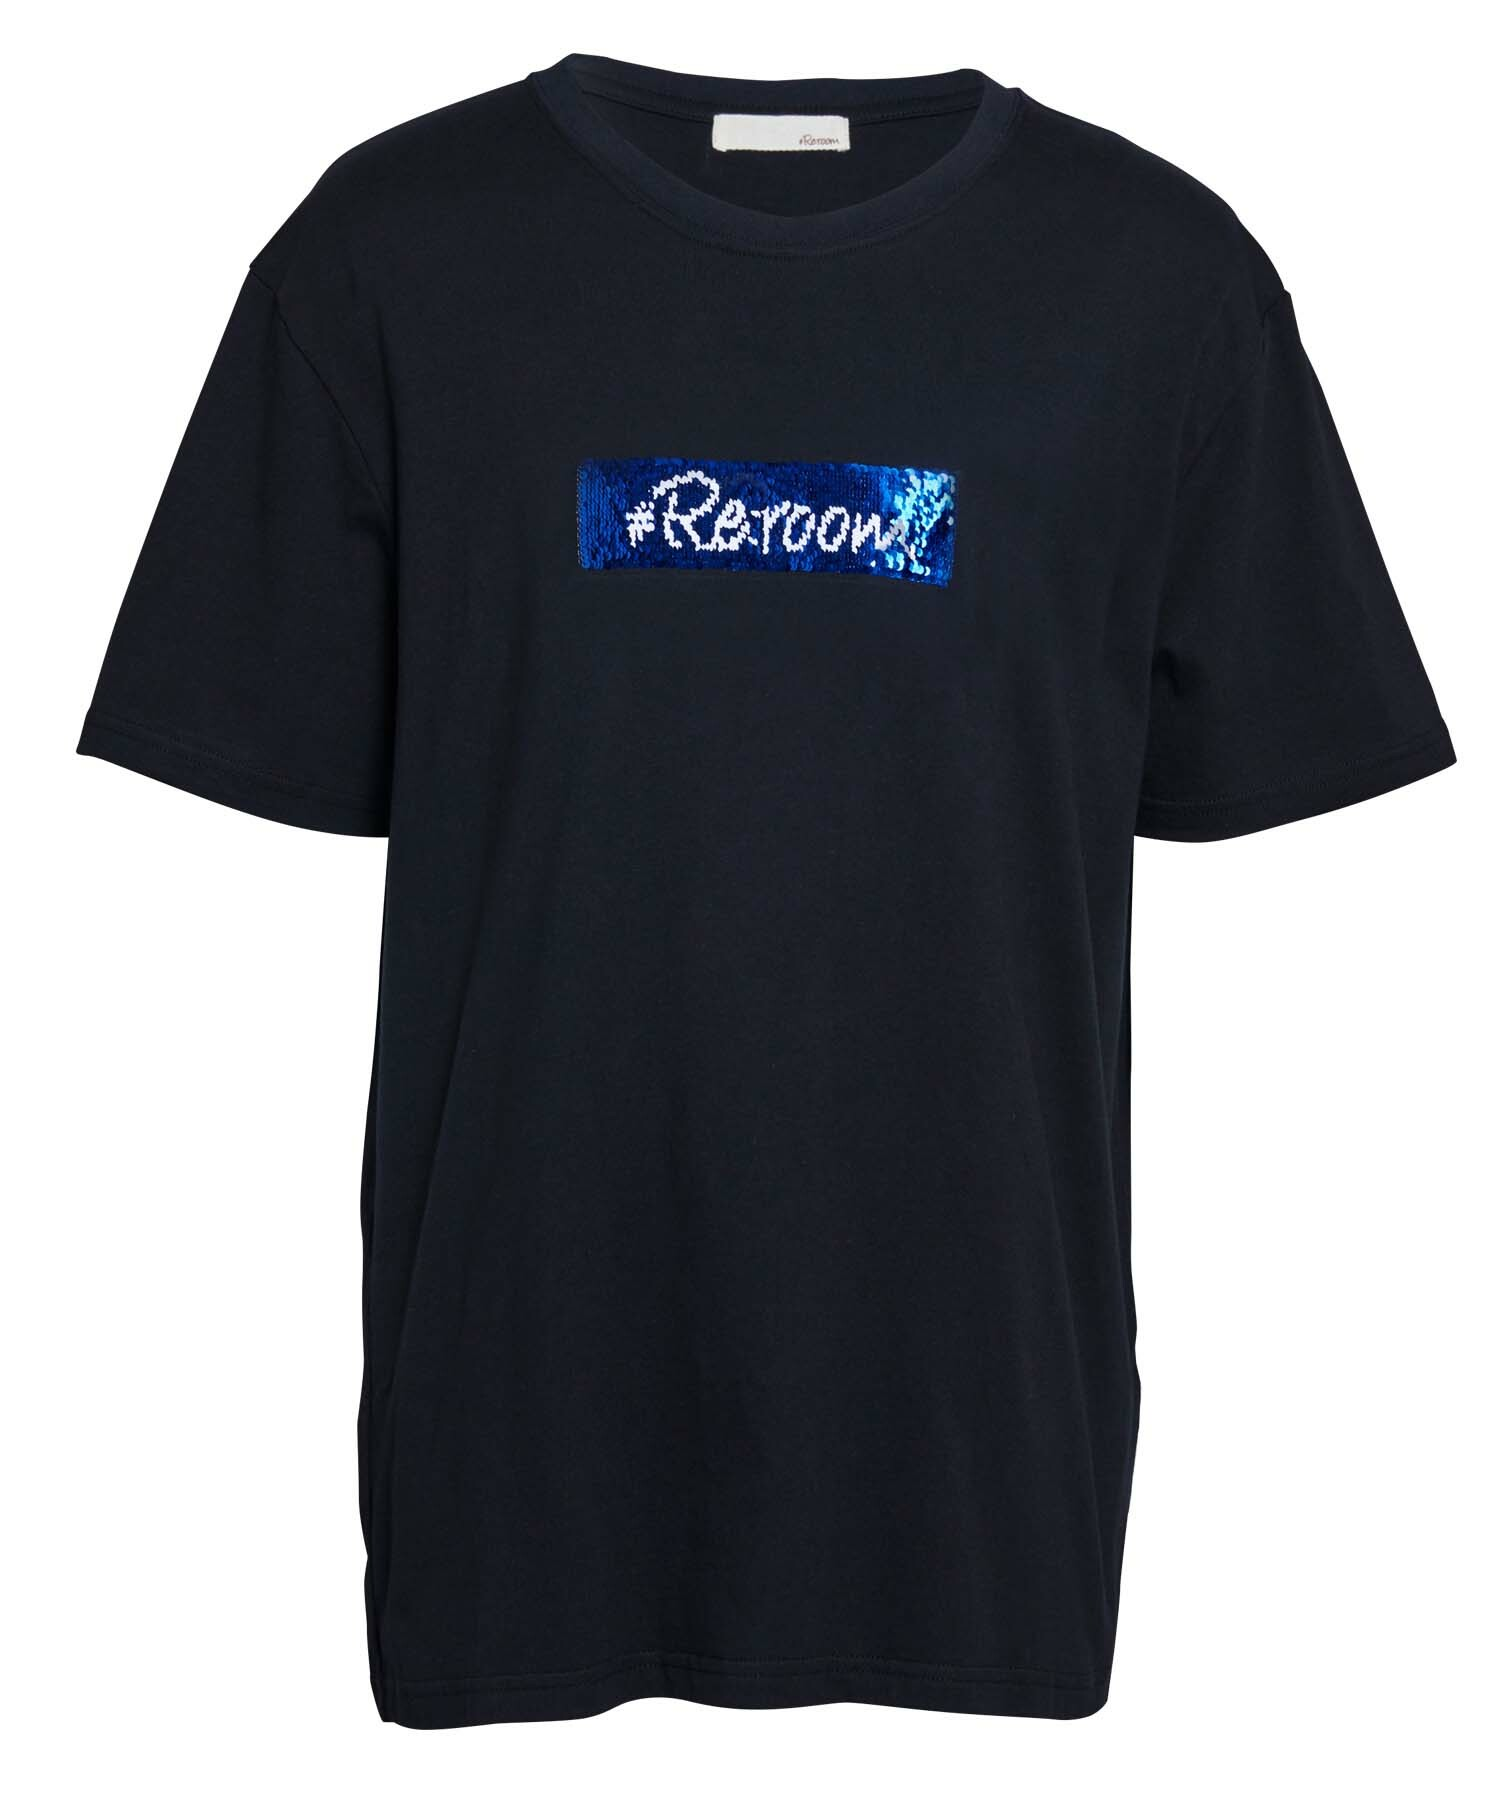 【※受注生産限定】4th ANNIVERSARY LIMITED BOX LOGO T-shirt[REC324]